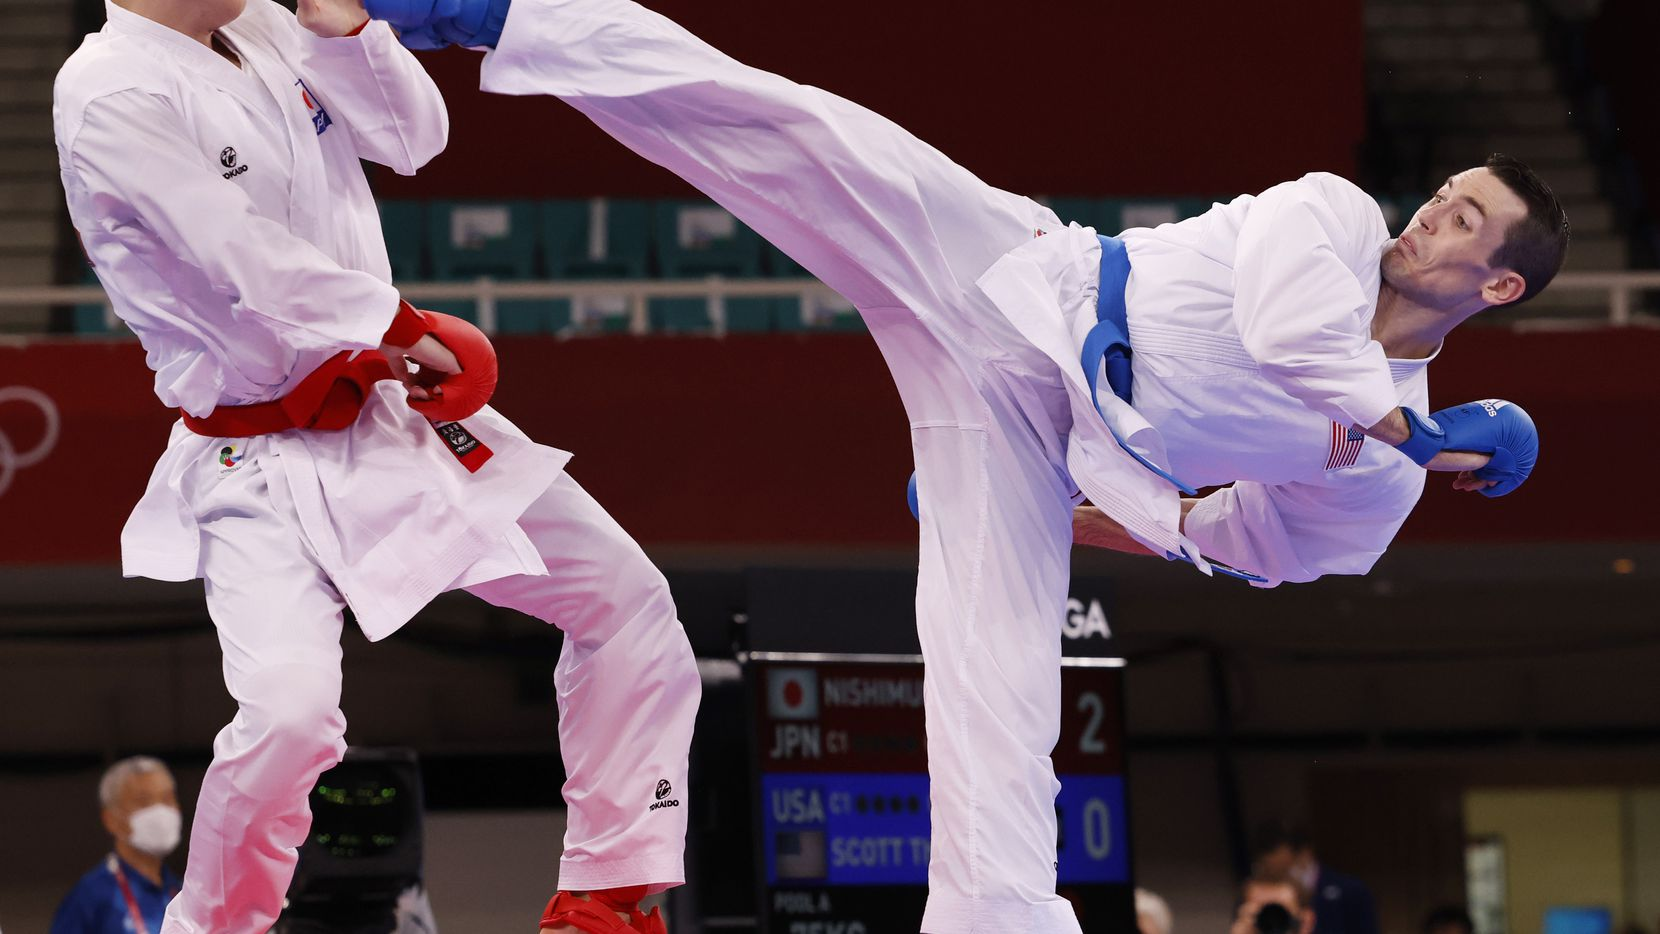 USA's Tom Scott attempts to kick Japan's Ken Nishimura during the karate men's kumite -75kg elimination round at the postponed 2020 Tokyo Olympics at Nippon Budokan, on Friday, August 6, 2021, in Tokyo, Japan. Nishimura defeated Scott 2-0. Scott finished in fourth place in his pool and did not advance to the next round. (Vernon Bryant/The Dallas Morning News)